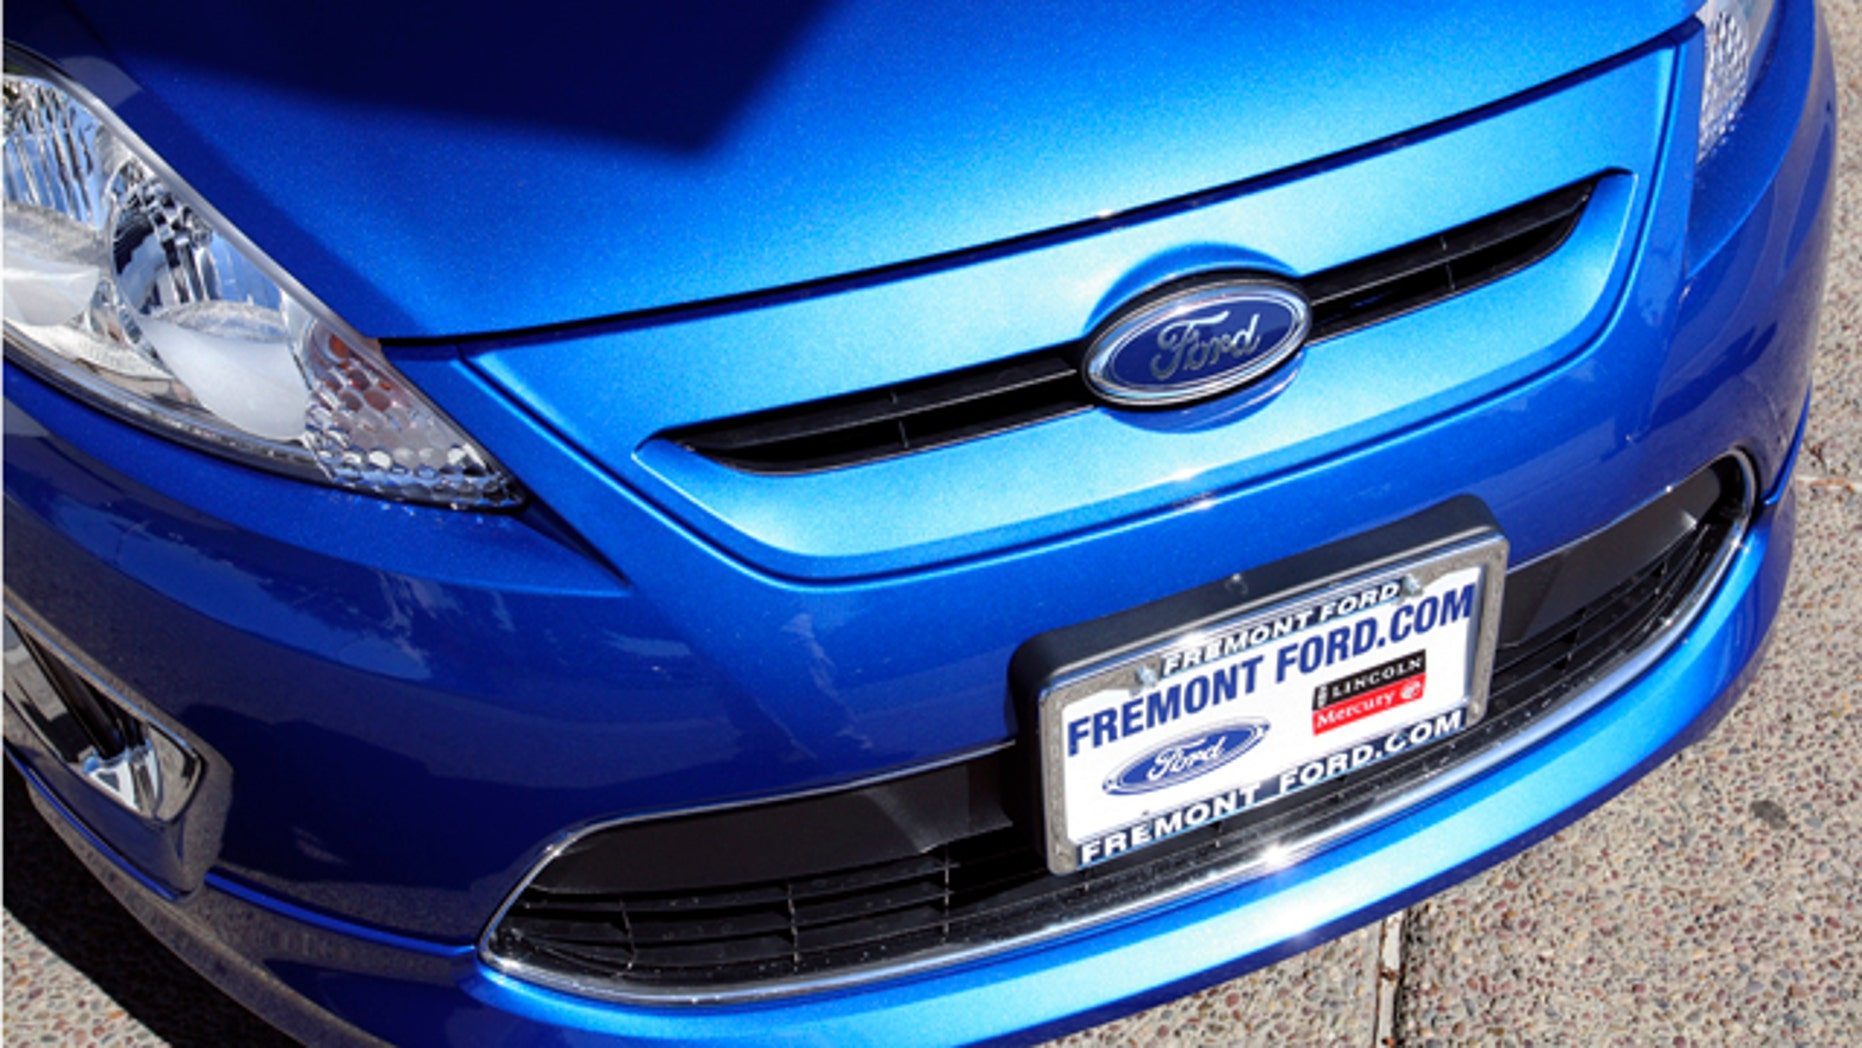 """FILE - In this Sept. 28, 2010 file photo, a 2011 Ford Fiesta vehicle is shown for sale at Fremont Ford in Newark, Calif. """"With gasoline prices eclipsing $3.90 a gallon, consumers are placing an even higher priority on fuel efficiency in every size and kind of vehicle,"""" said Ken Czubay, Ford vice president, U.S. Marketing, Sales and Service. (AP Photo/Ben Margot)"""